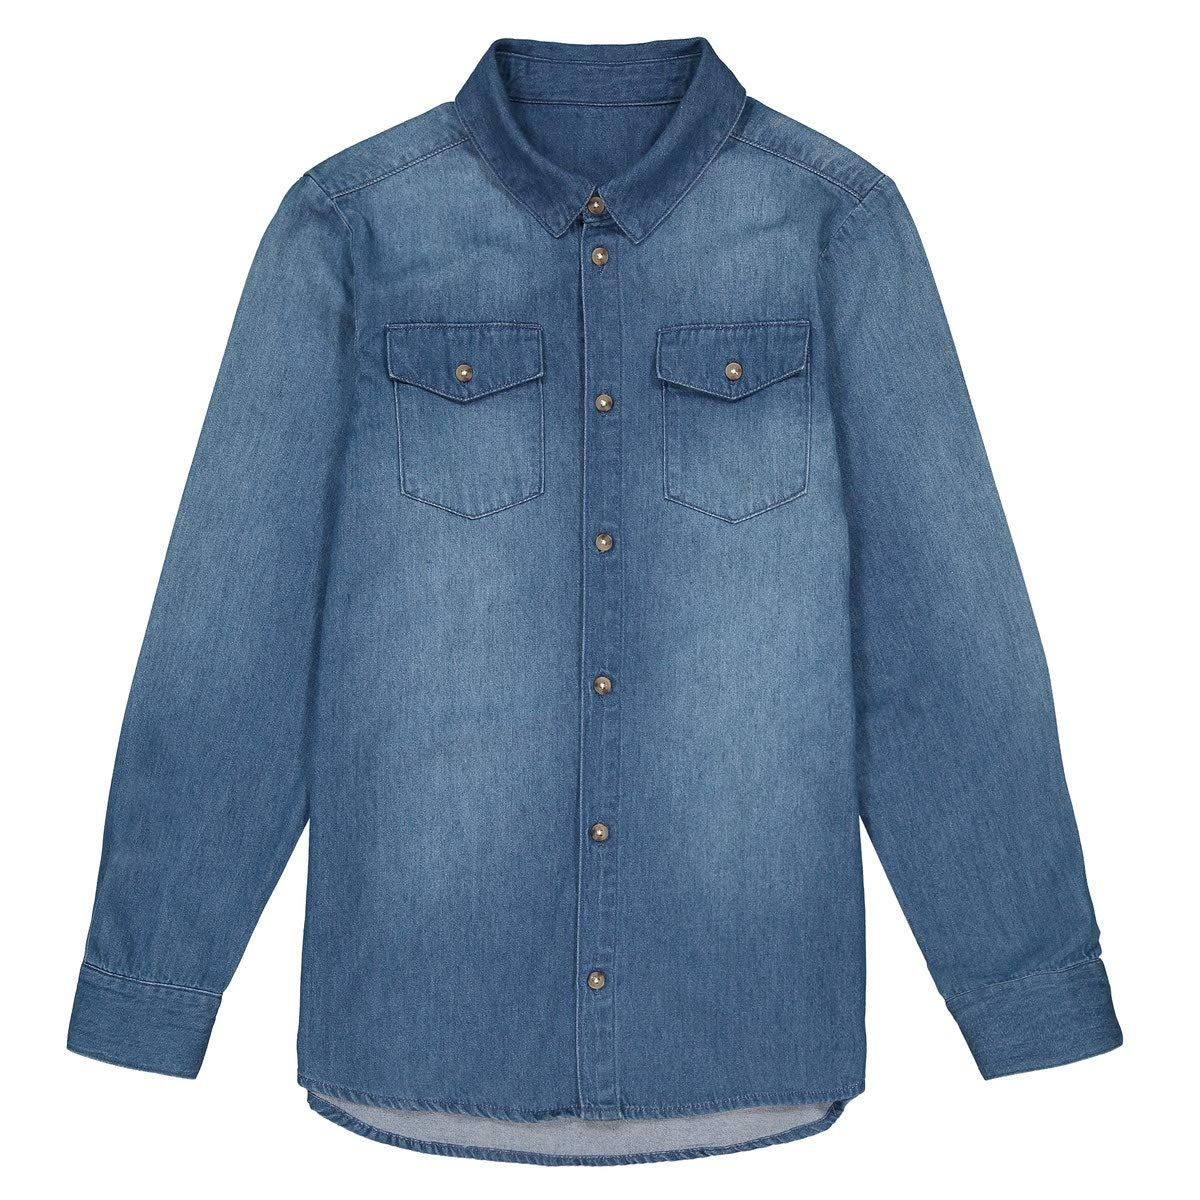 La Redoute Collections Cotton Denim Shirt, 10-16 Years Blue Size 16 Years (174 cm)